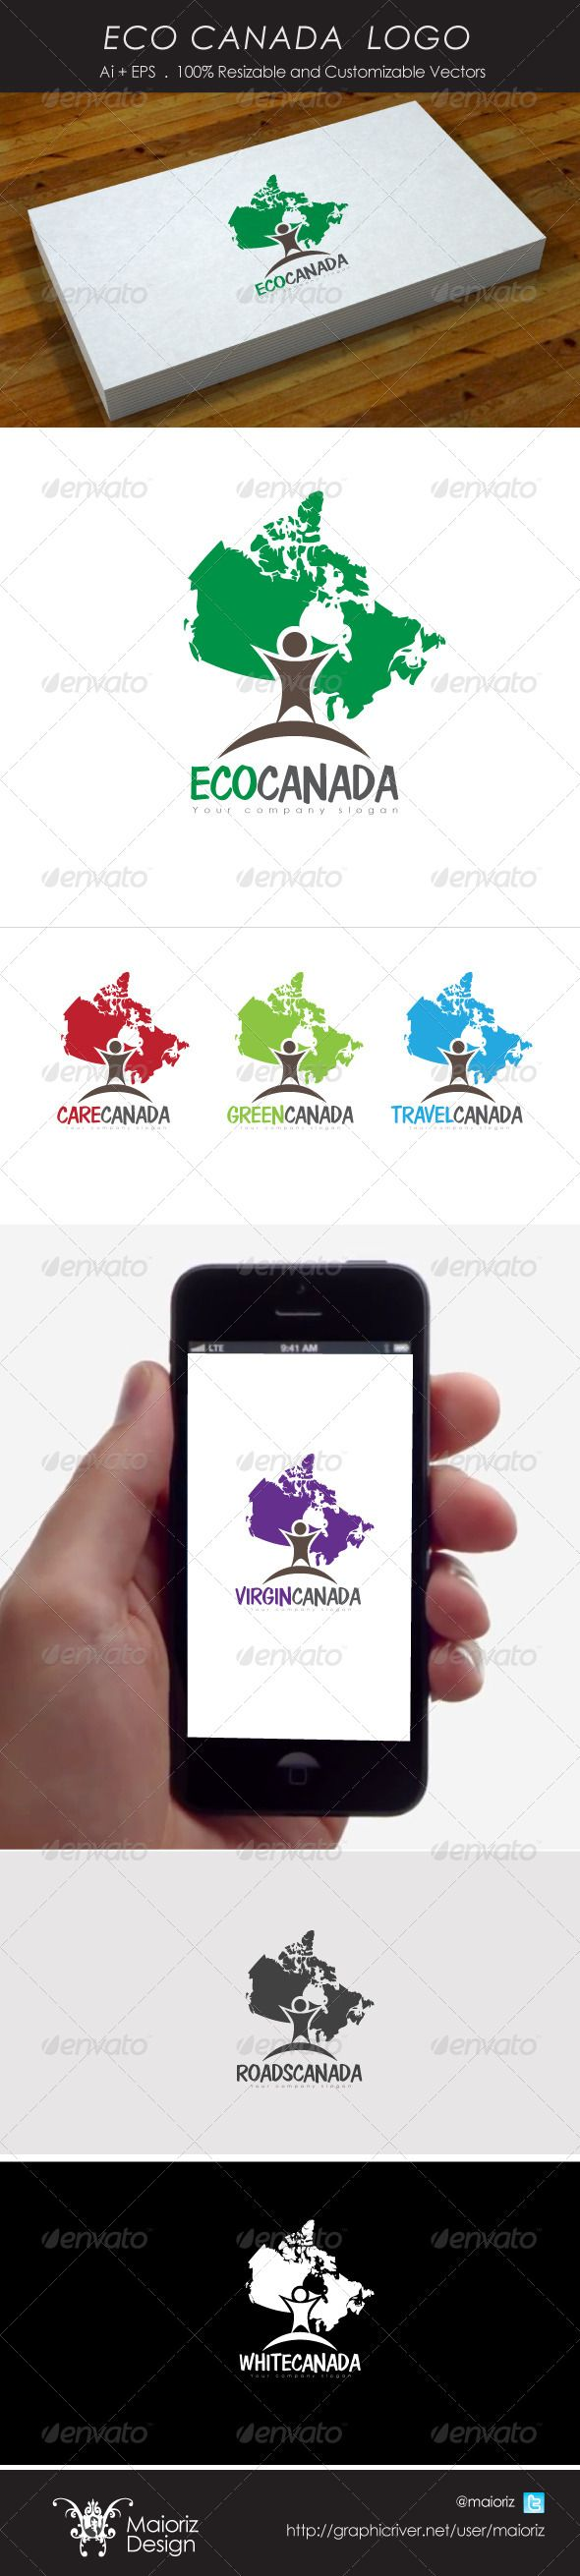 Eco Canada Logo — Vector EPS #north #airplane • Available here → https://graphicriver.net/item/eco-canada-logo/4212619?ref=pxcr